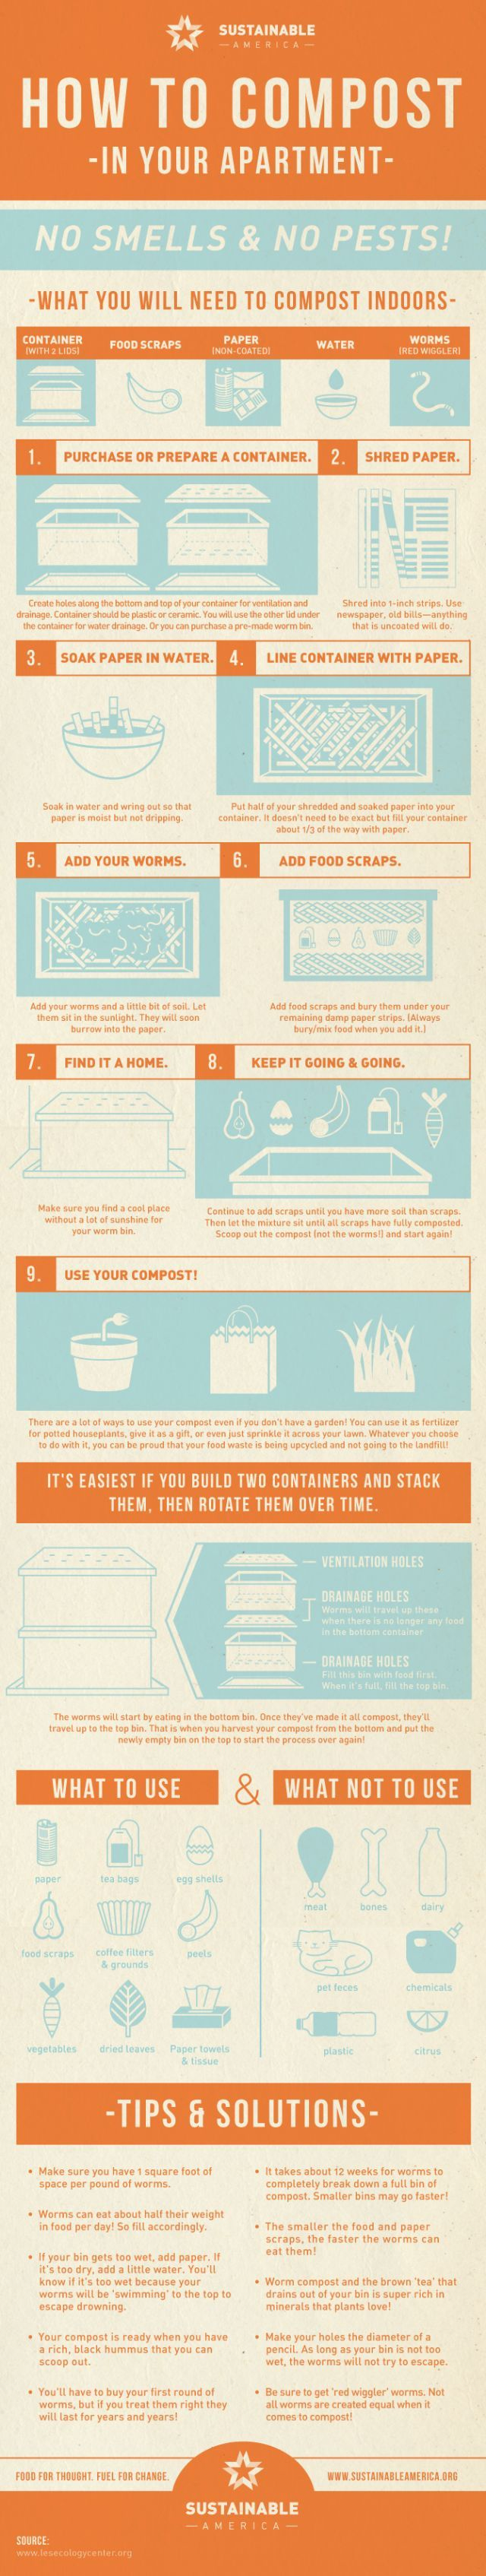 Think composting is only possible outdoors? False! Here's how to compost in your own apartment.